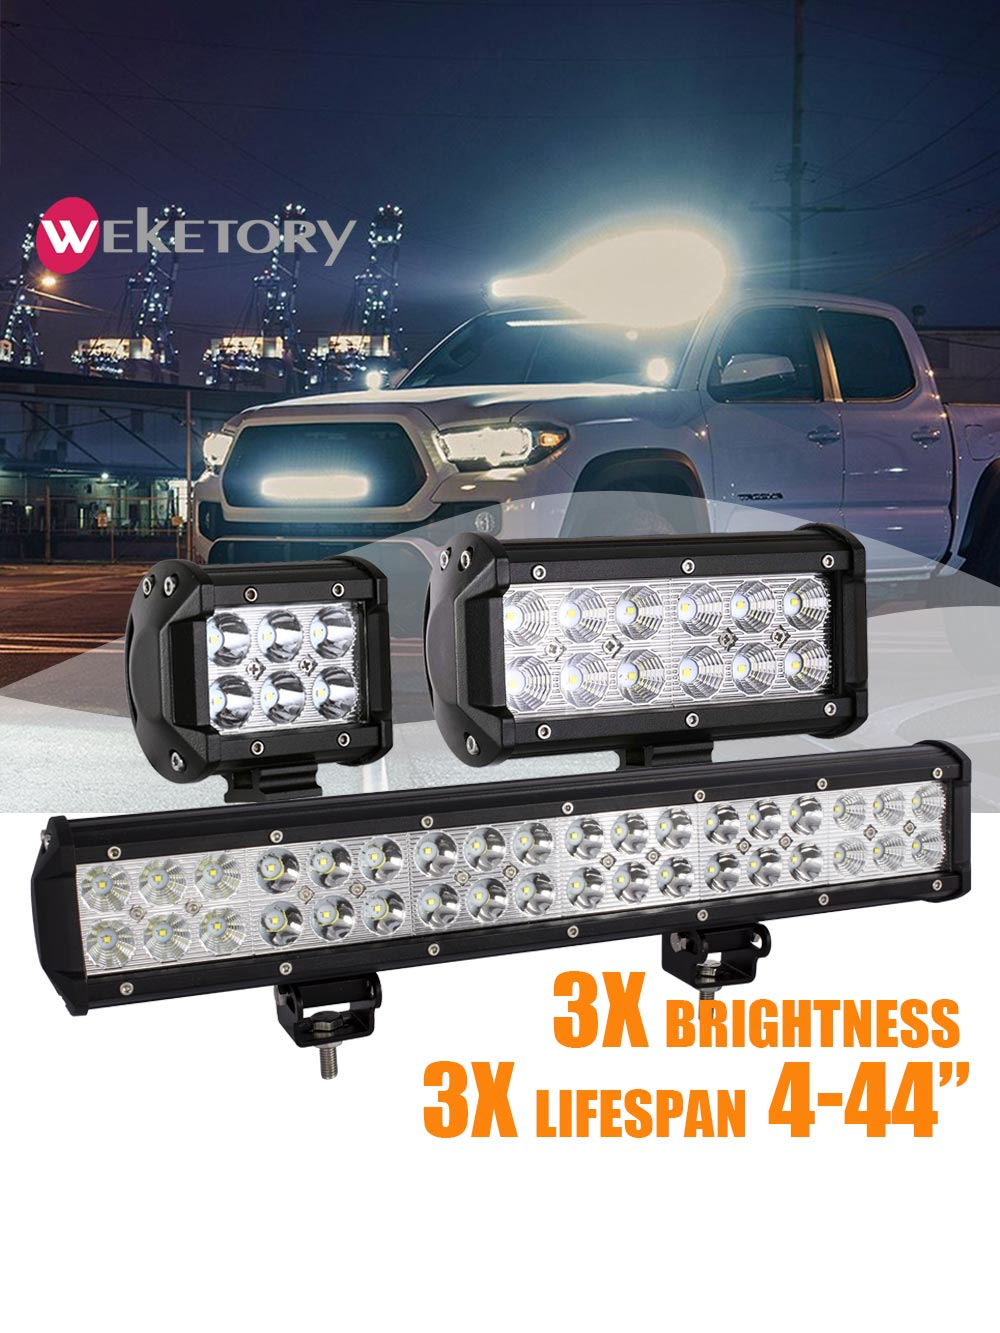 weketory 4 7 12 17 inch 18W 36W 72W 108W LED Work Light LED Bar Light for Motorcycle Tractor Boat Of